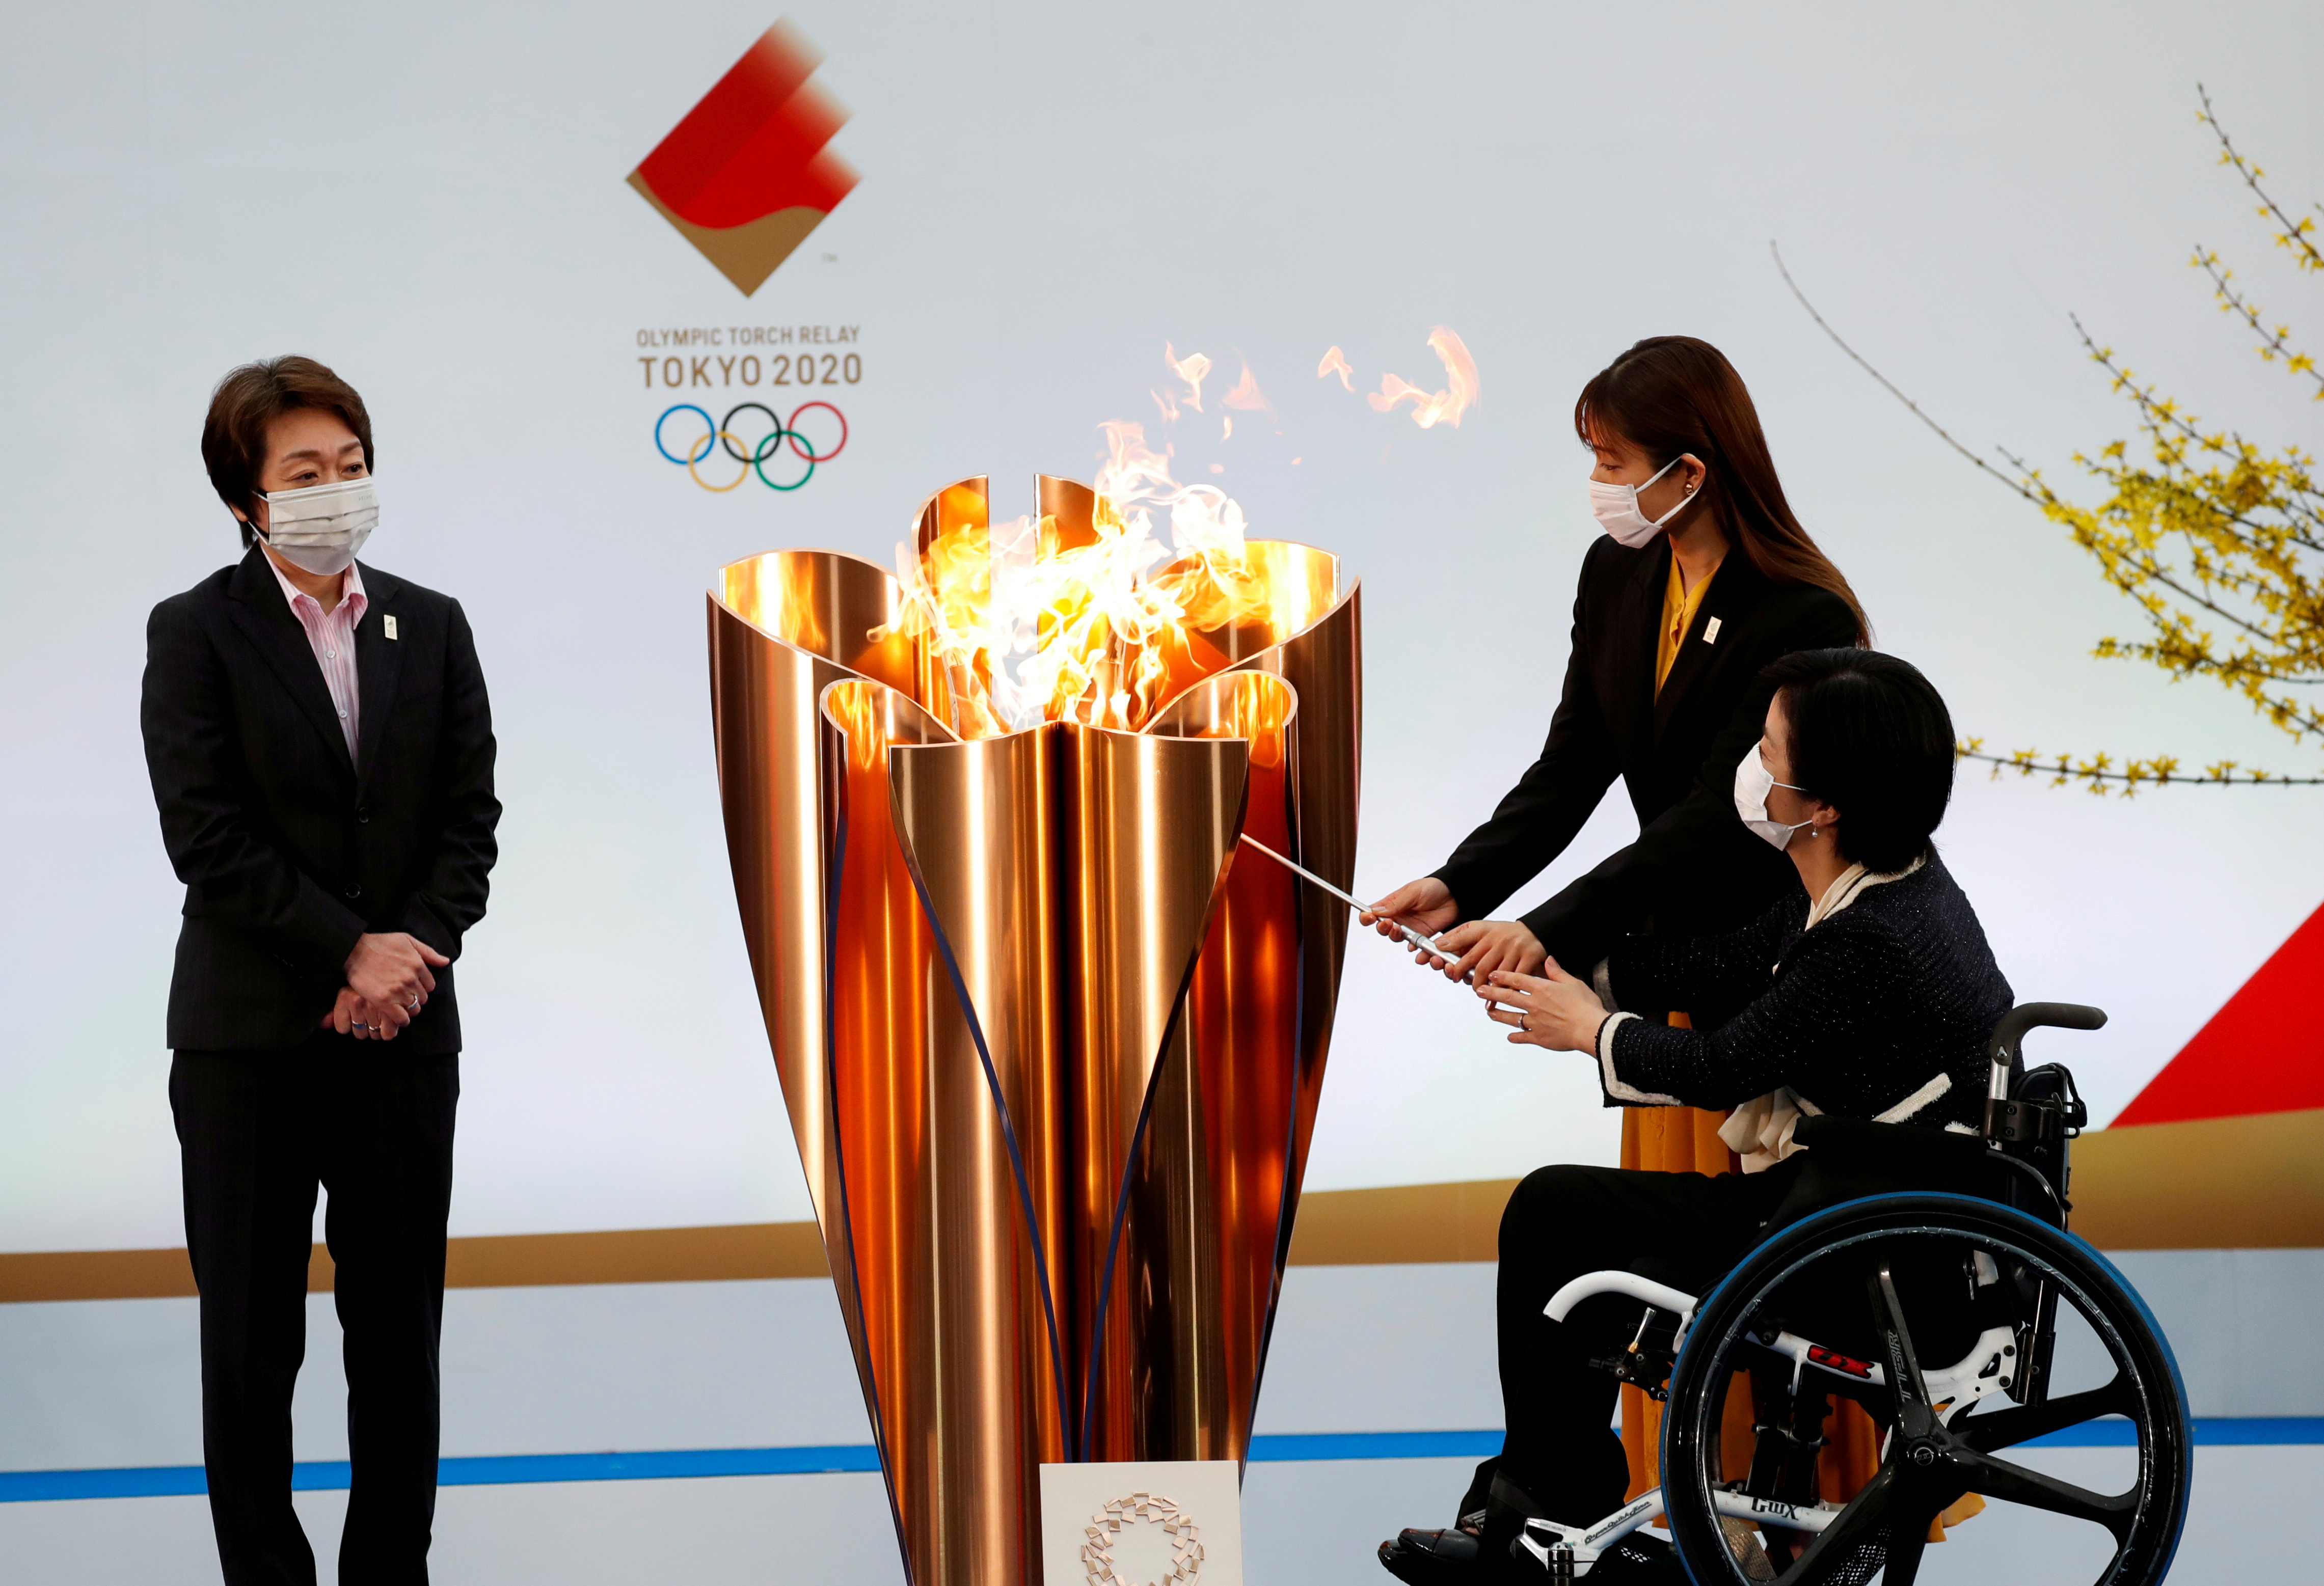 Tokyo 2020 President Seiko Hashimoto looks on as actor Satomi Ishihara and Paralympian Aki Taguchi light the celebration cauldron on the first day of the Tokyo 2020 Olympic torch relay in Naraha, Fukushima prefecture, Japan March 25, 2021. REUTERS/Kim Kyung-Hoon/Pool/File Photo